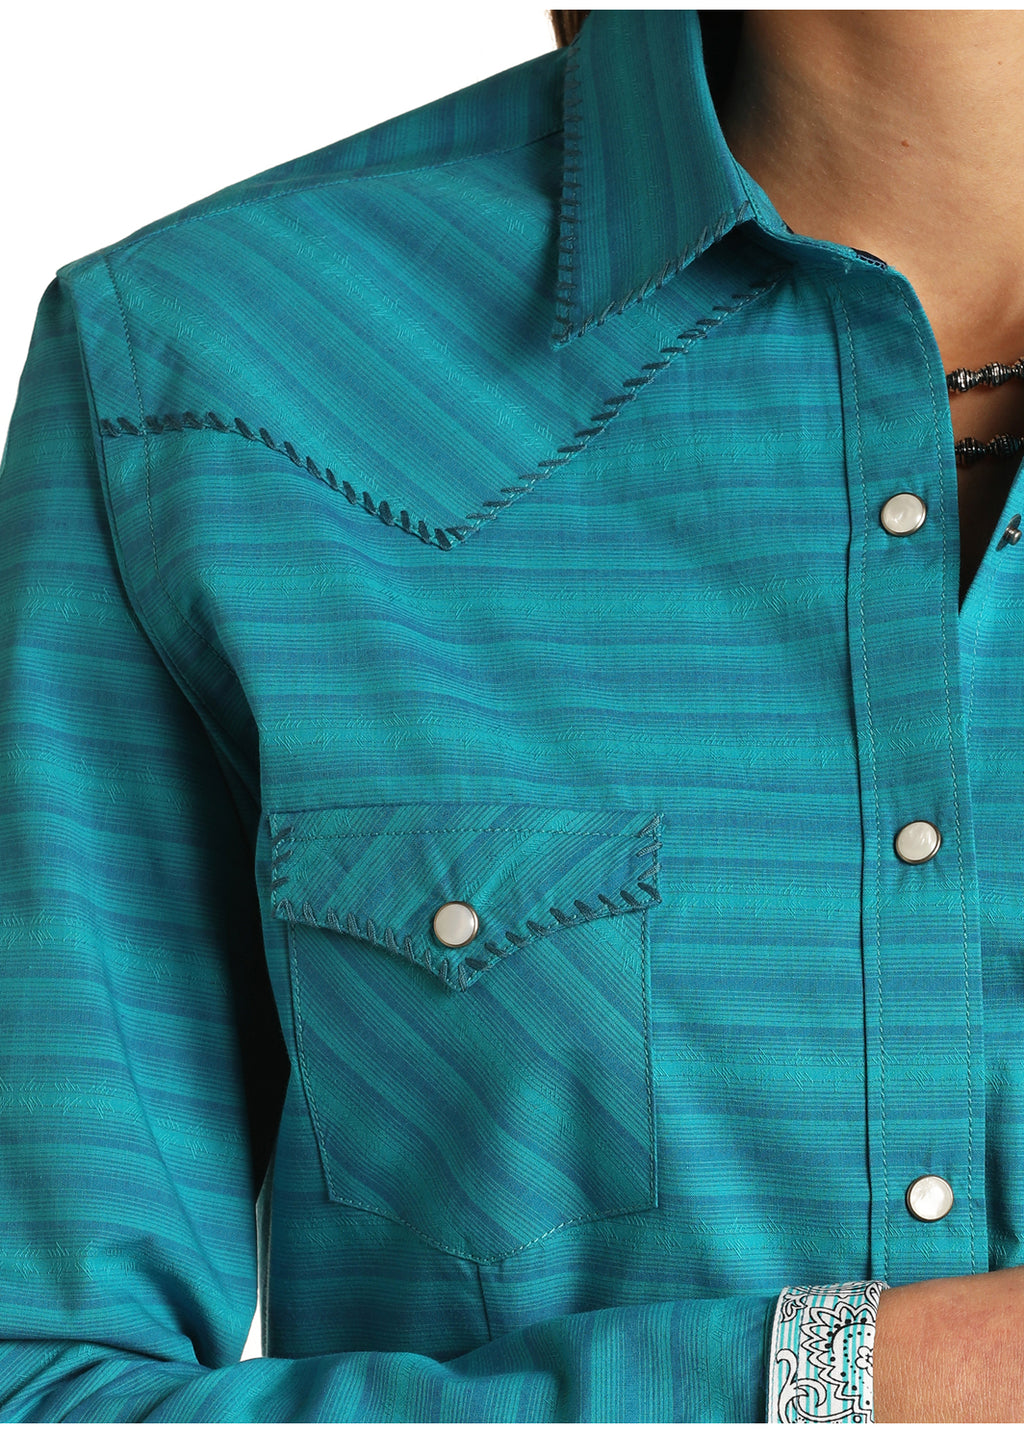 Panhandle Long Sleeved Shirt (R4S8453)